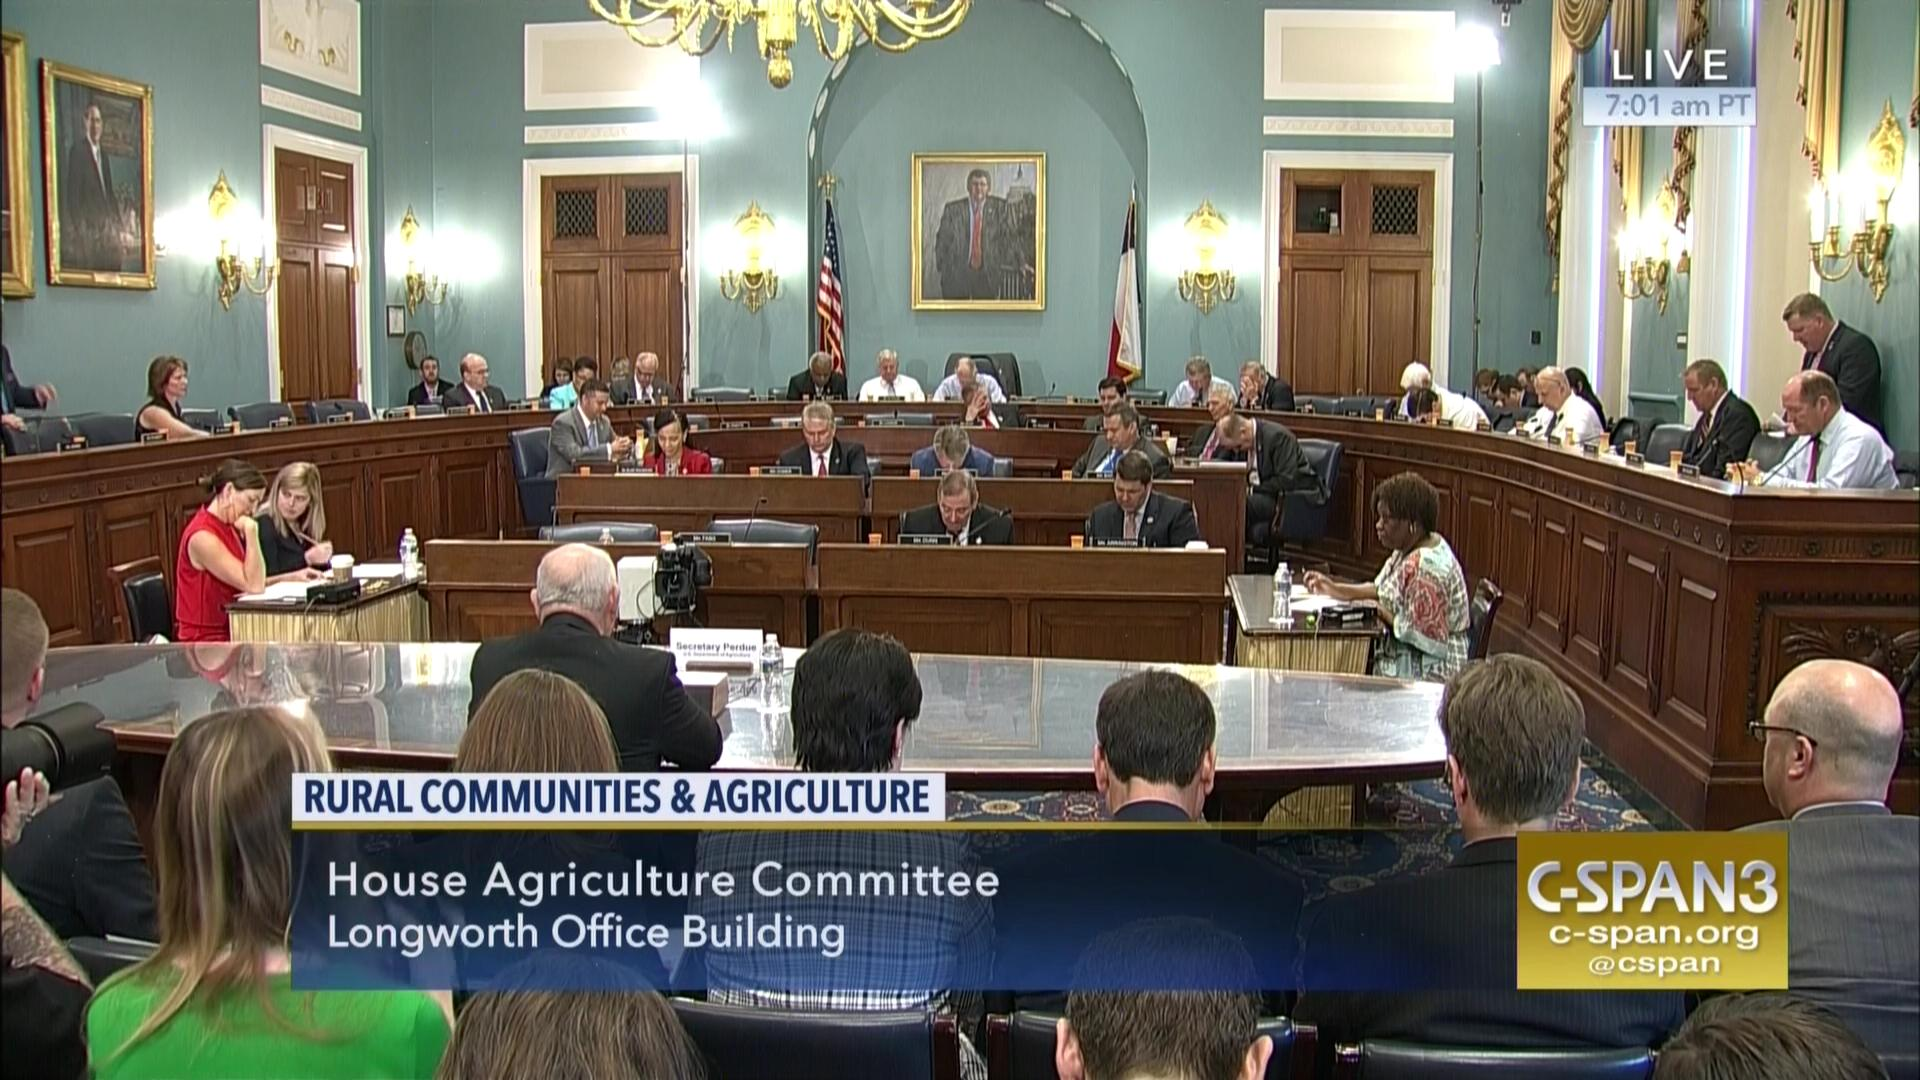 Agri cultures project logo duckdog design - Prayer Opens Agriculture Hearing With Sec Perdue